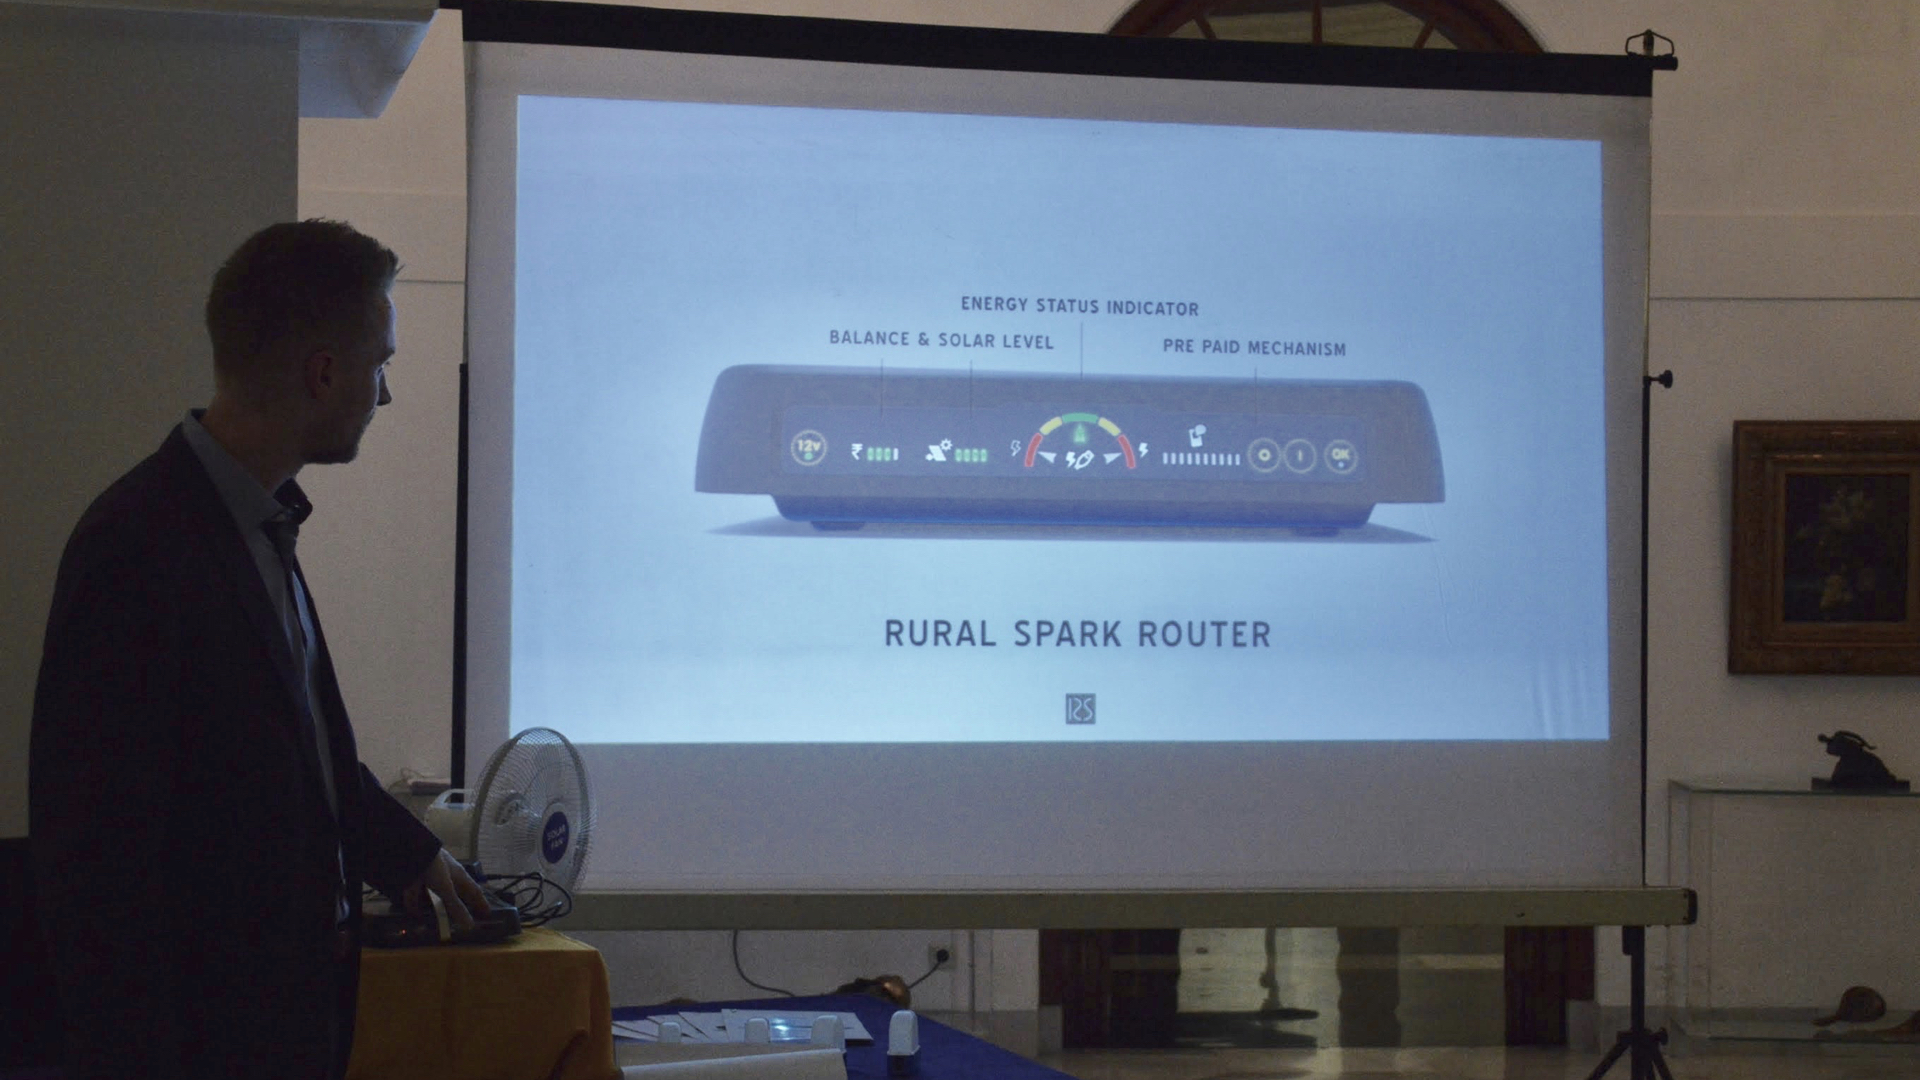 Evan showcasing the new Rural Spark Router with prepaid module, displaying solar and credit balance and allowing for all 5V and 12V applications to be charged.